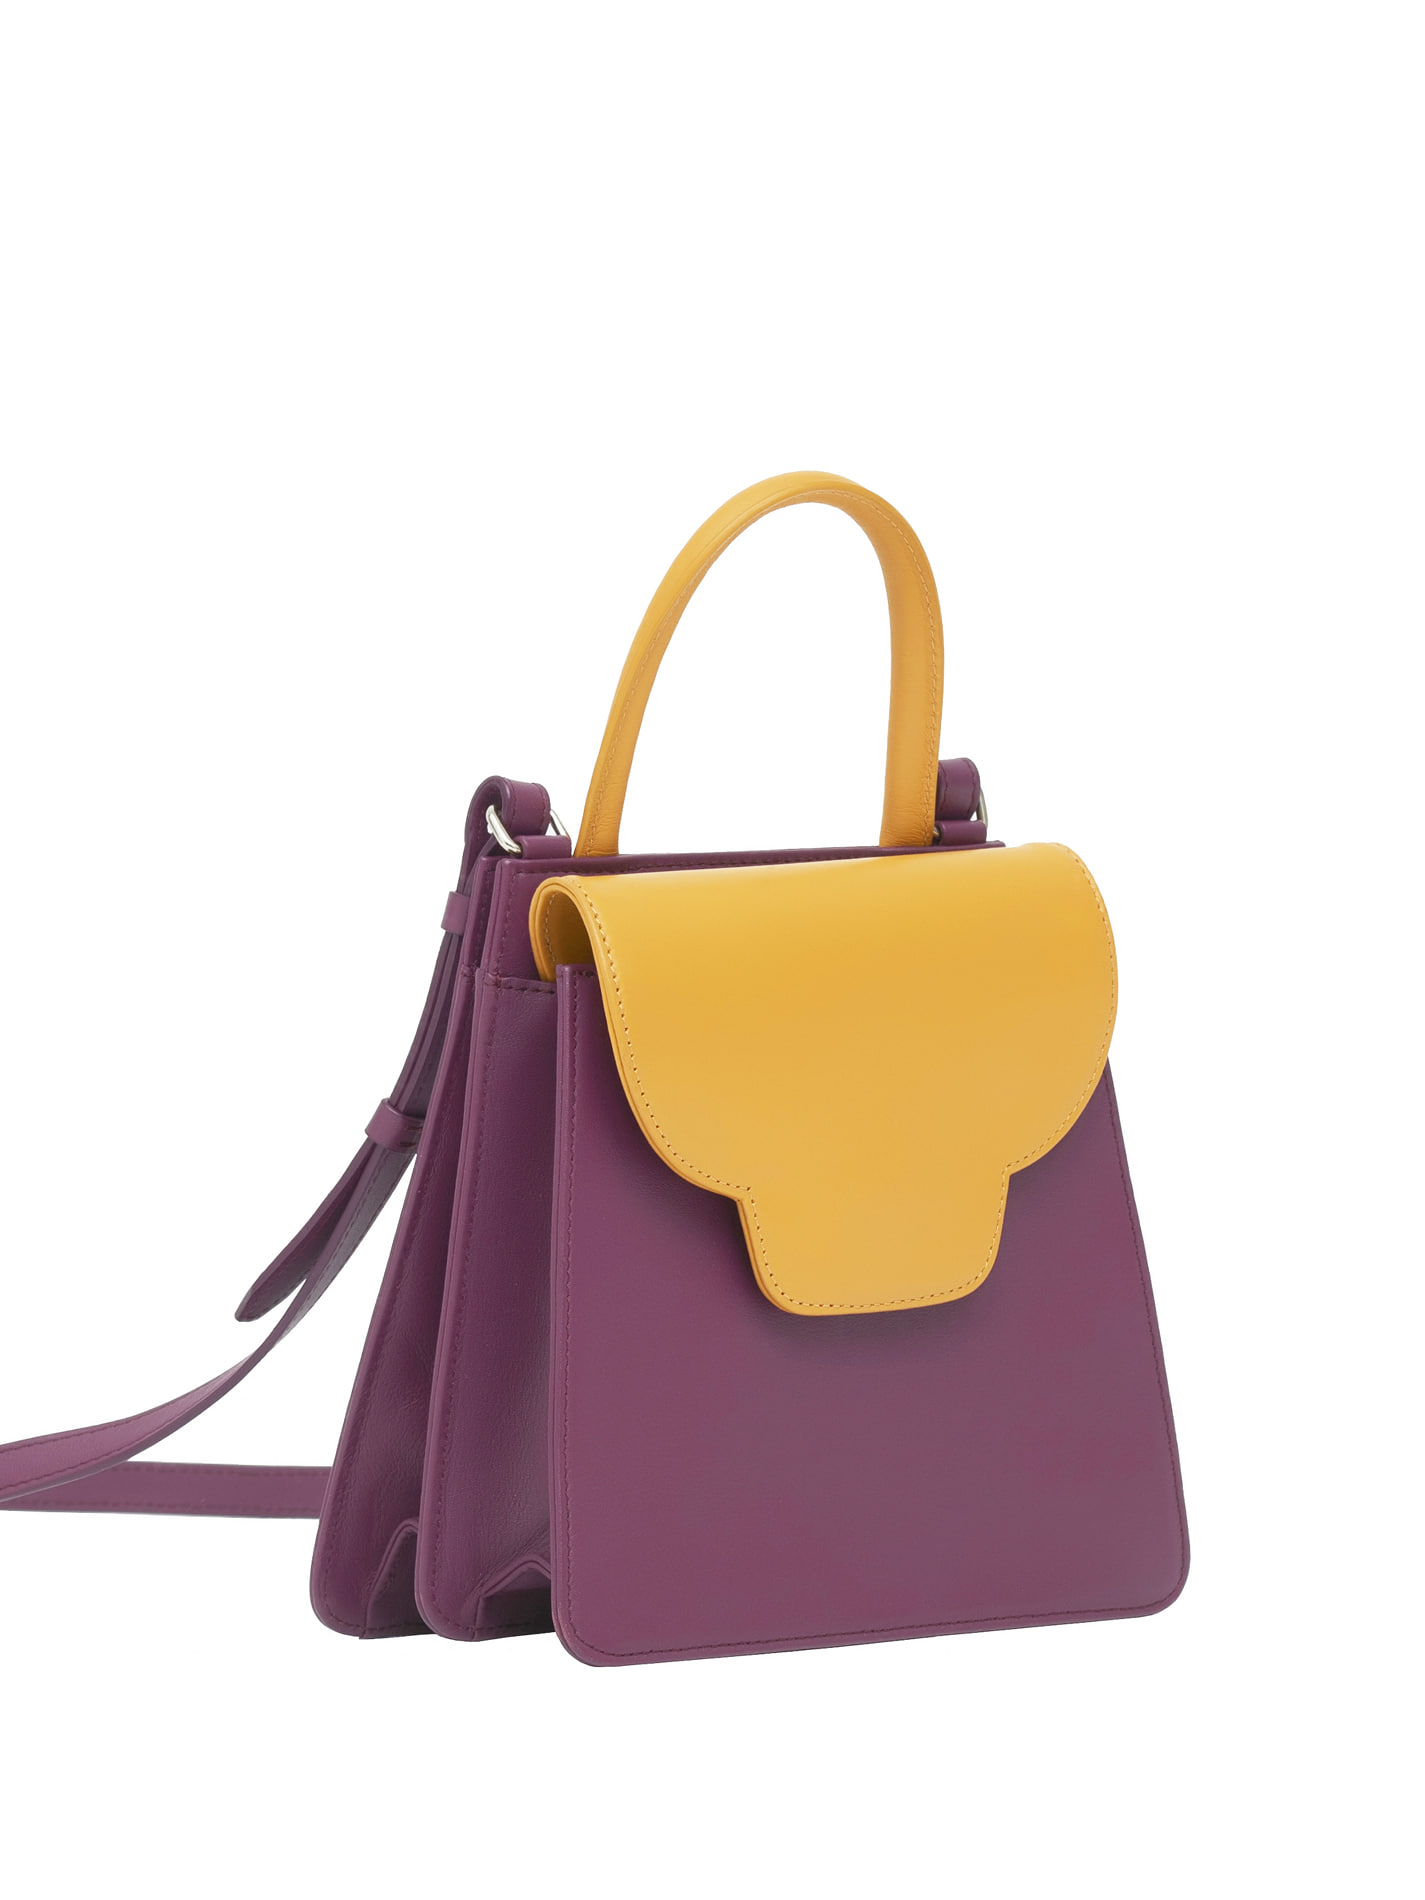 LE BEAU BAG - PURPLE